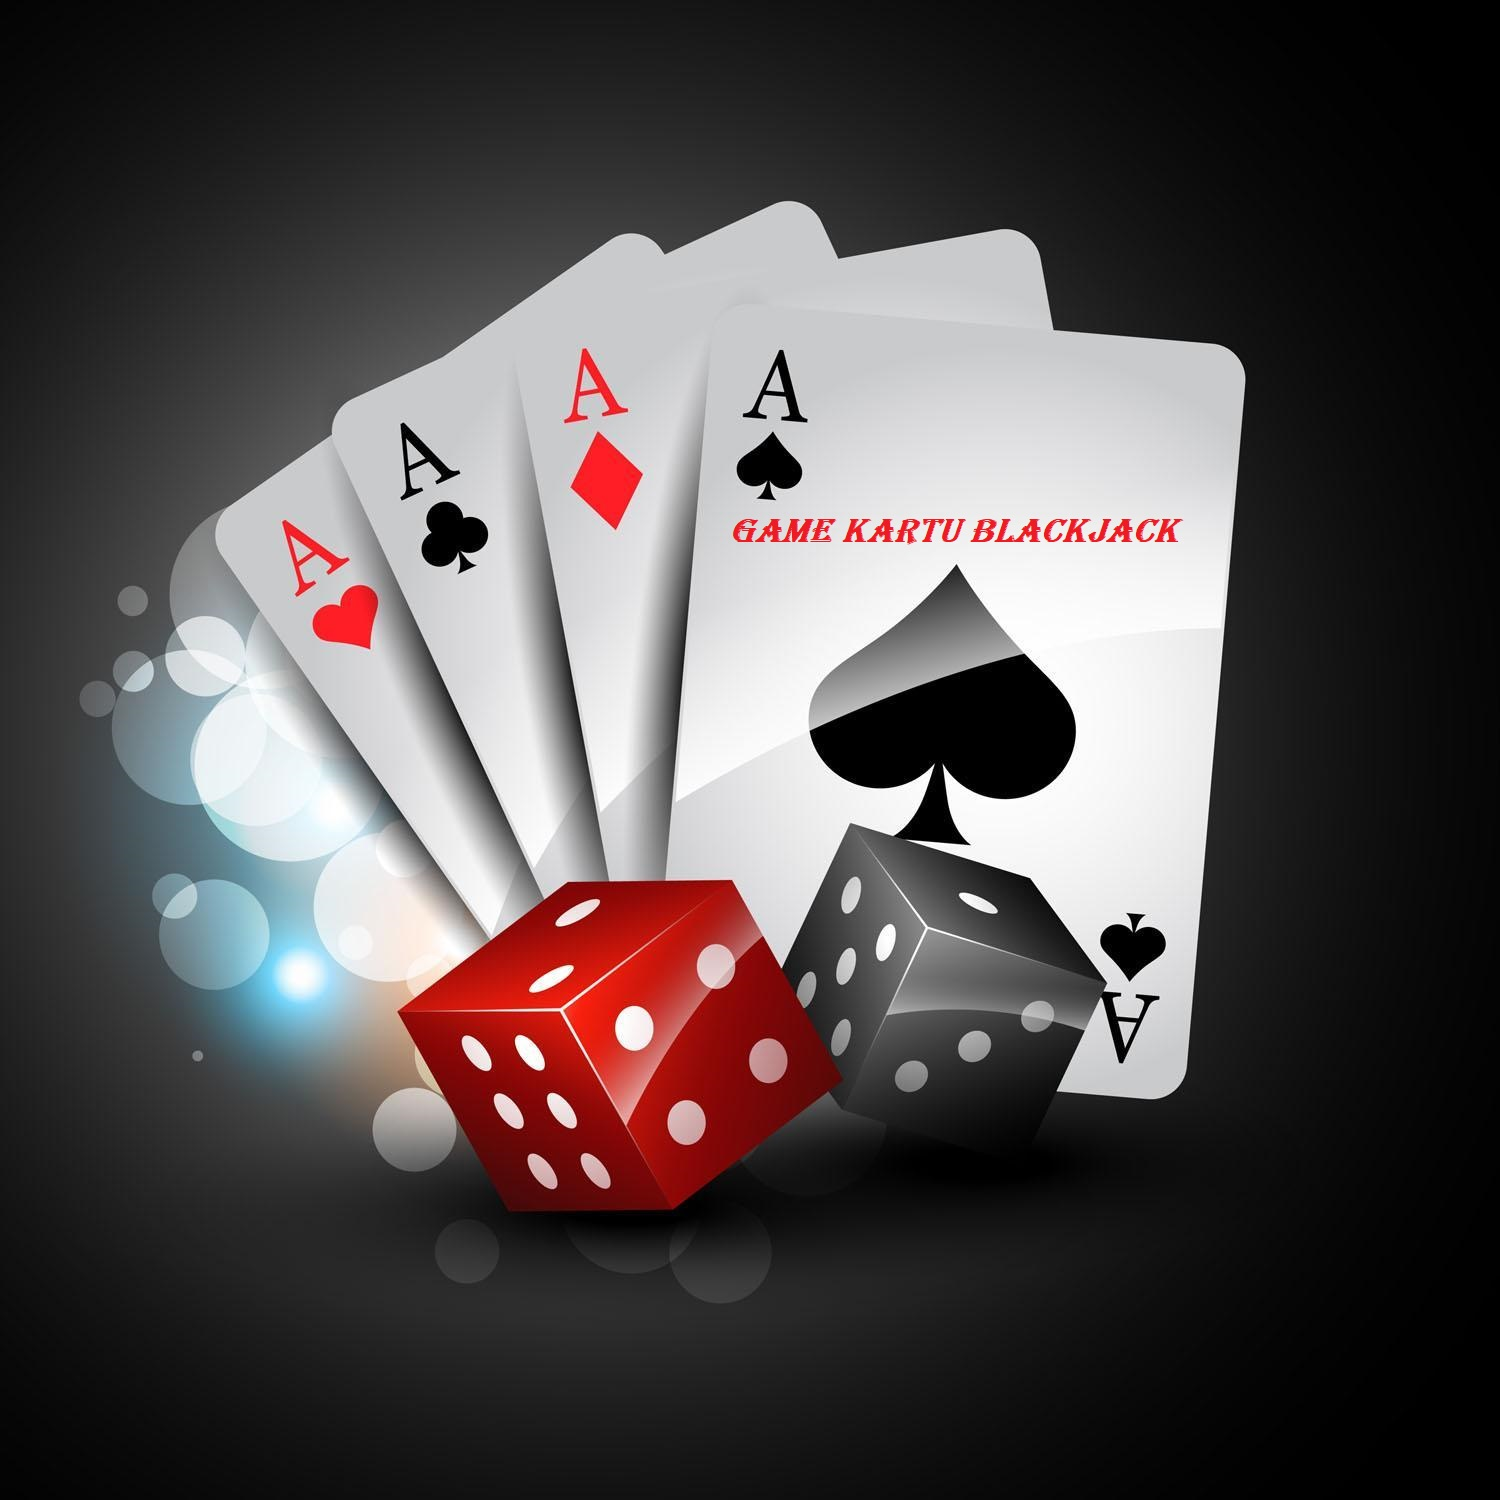 Game Kartu Blackjack asli